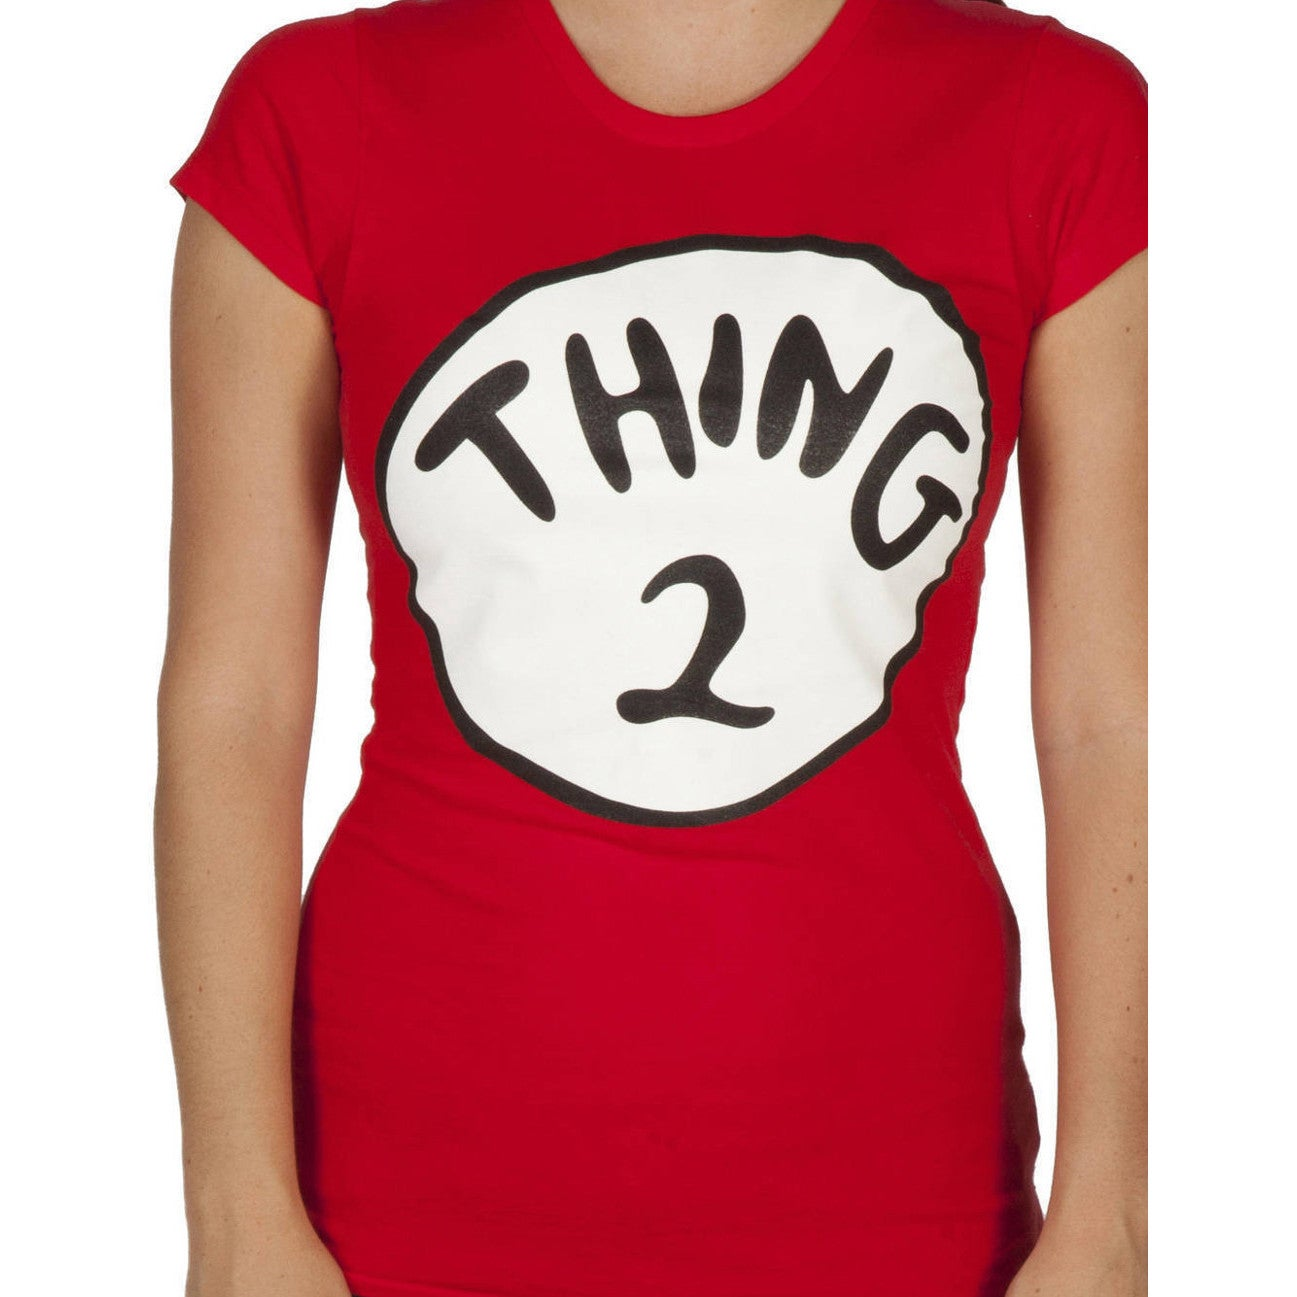 Shop Women s Dr. Seuss Cat In The Hat Thing 2 Red Cotton T-shirt - Free  Shipping On Orders Over  45 - Overstock - 9779492 4261e18b2